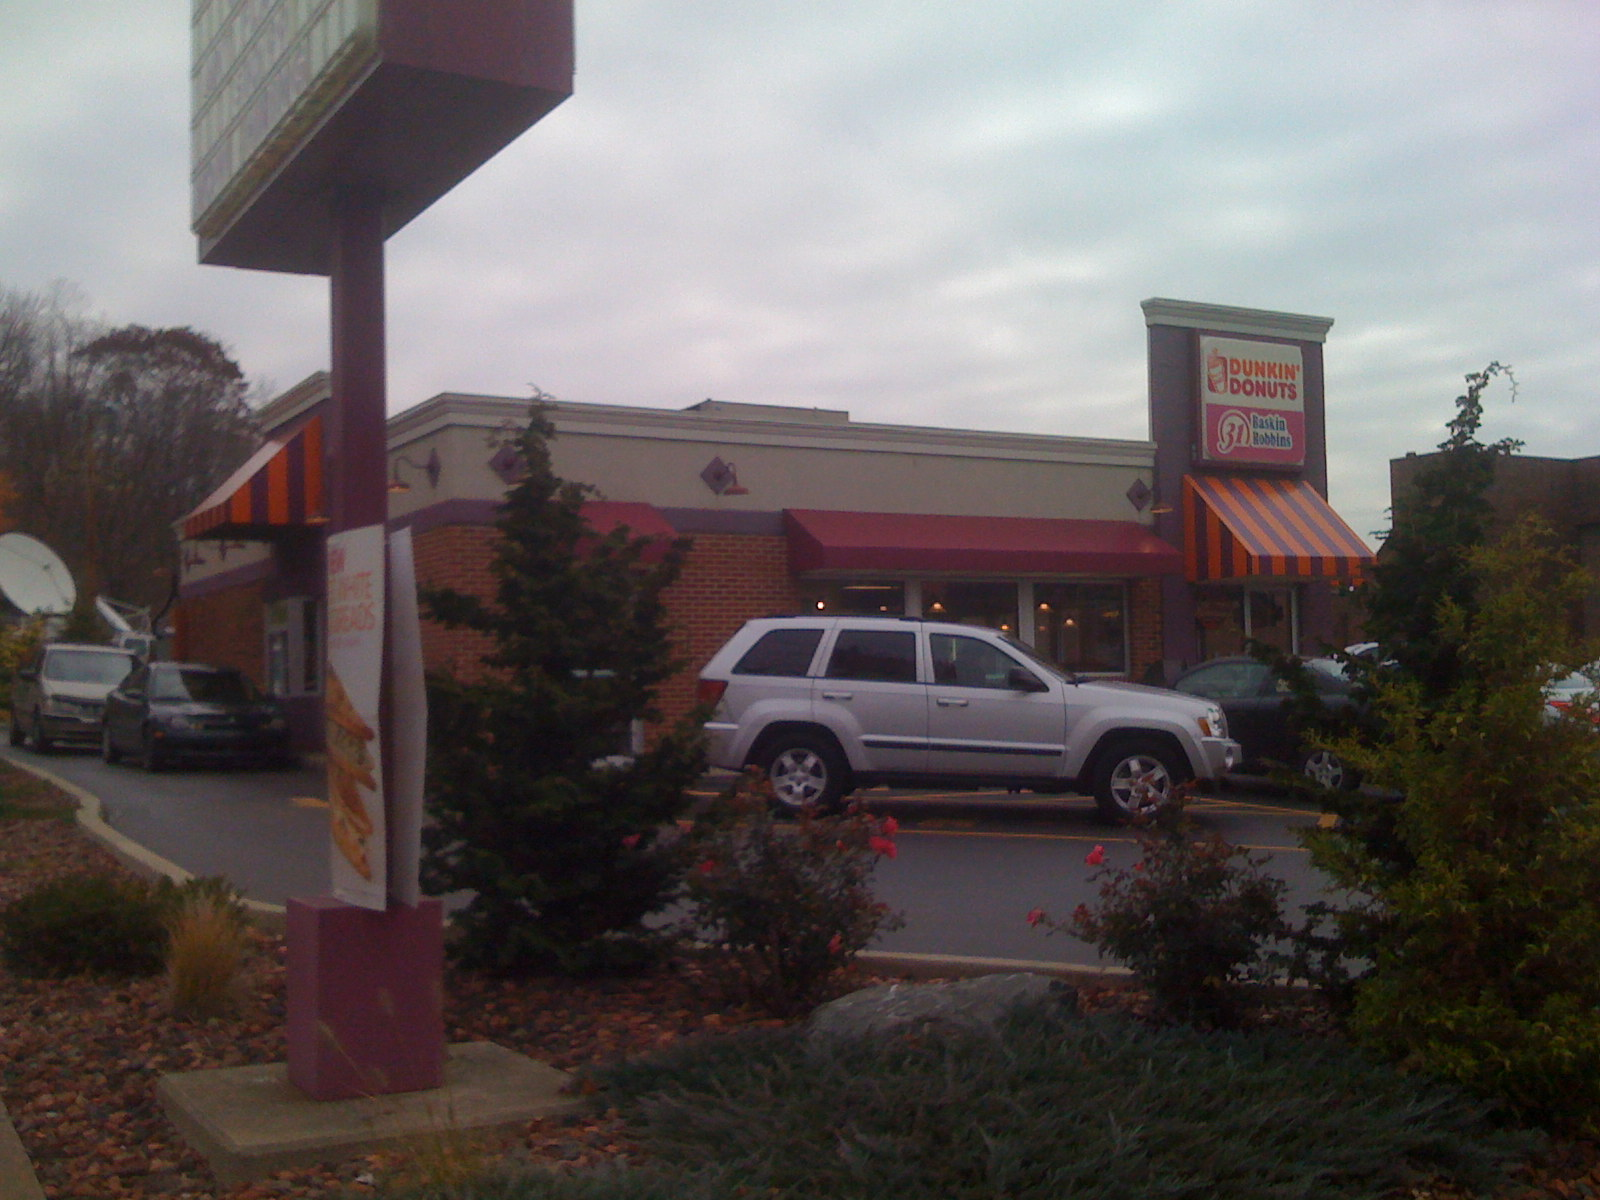 Dunkin Donuts Seeking Des Moines Area Store UrbanDSMcom - Dunkin donuts location map usa